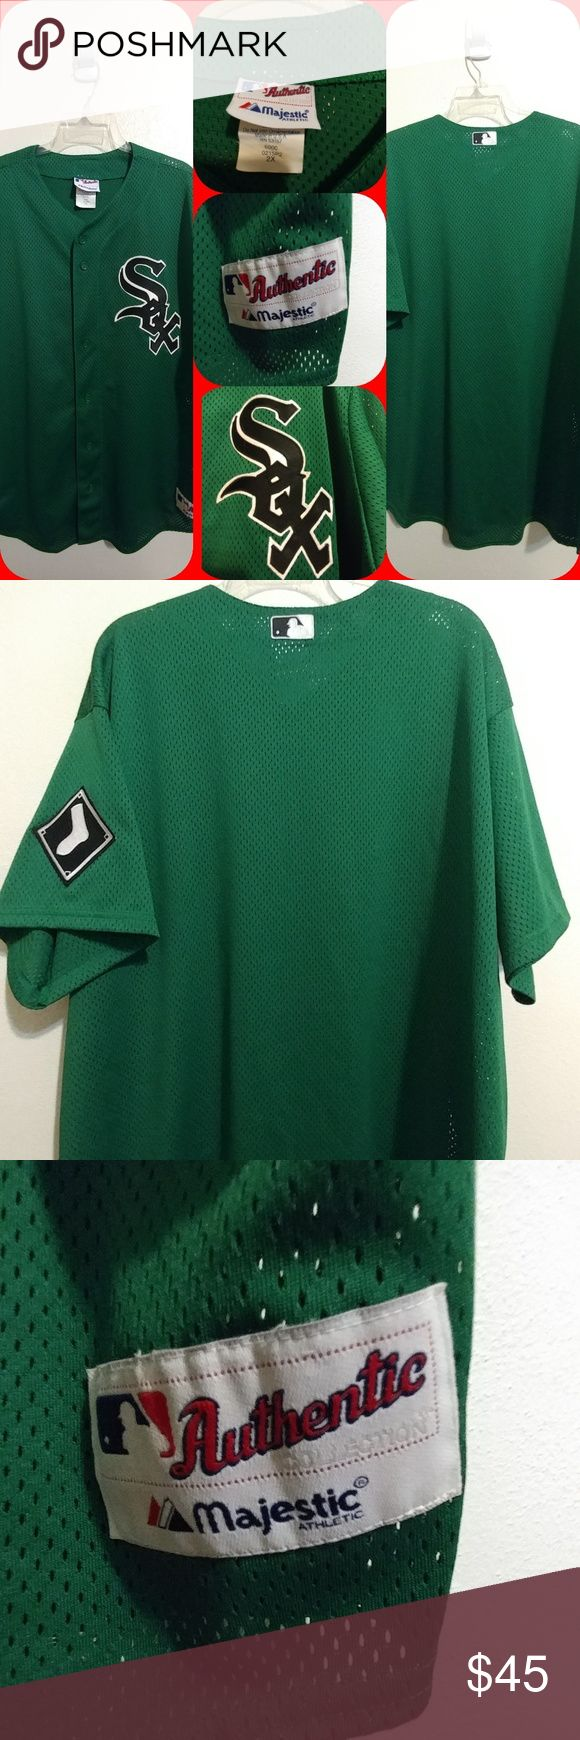 CHICAGO WHITE SOX ST PADDY'S DAY JERSEY SIZE 2X MAJESTIC CHICAGO WHITE SOX ST PADDY'S DAY JERSEY SIZE 2X EXCELLENT PRE-OWNED CONDITION Majestic Other